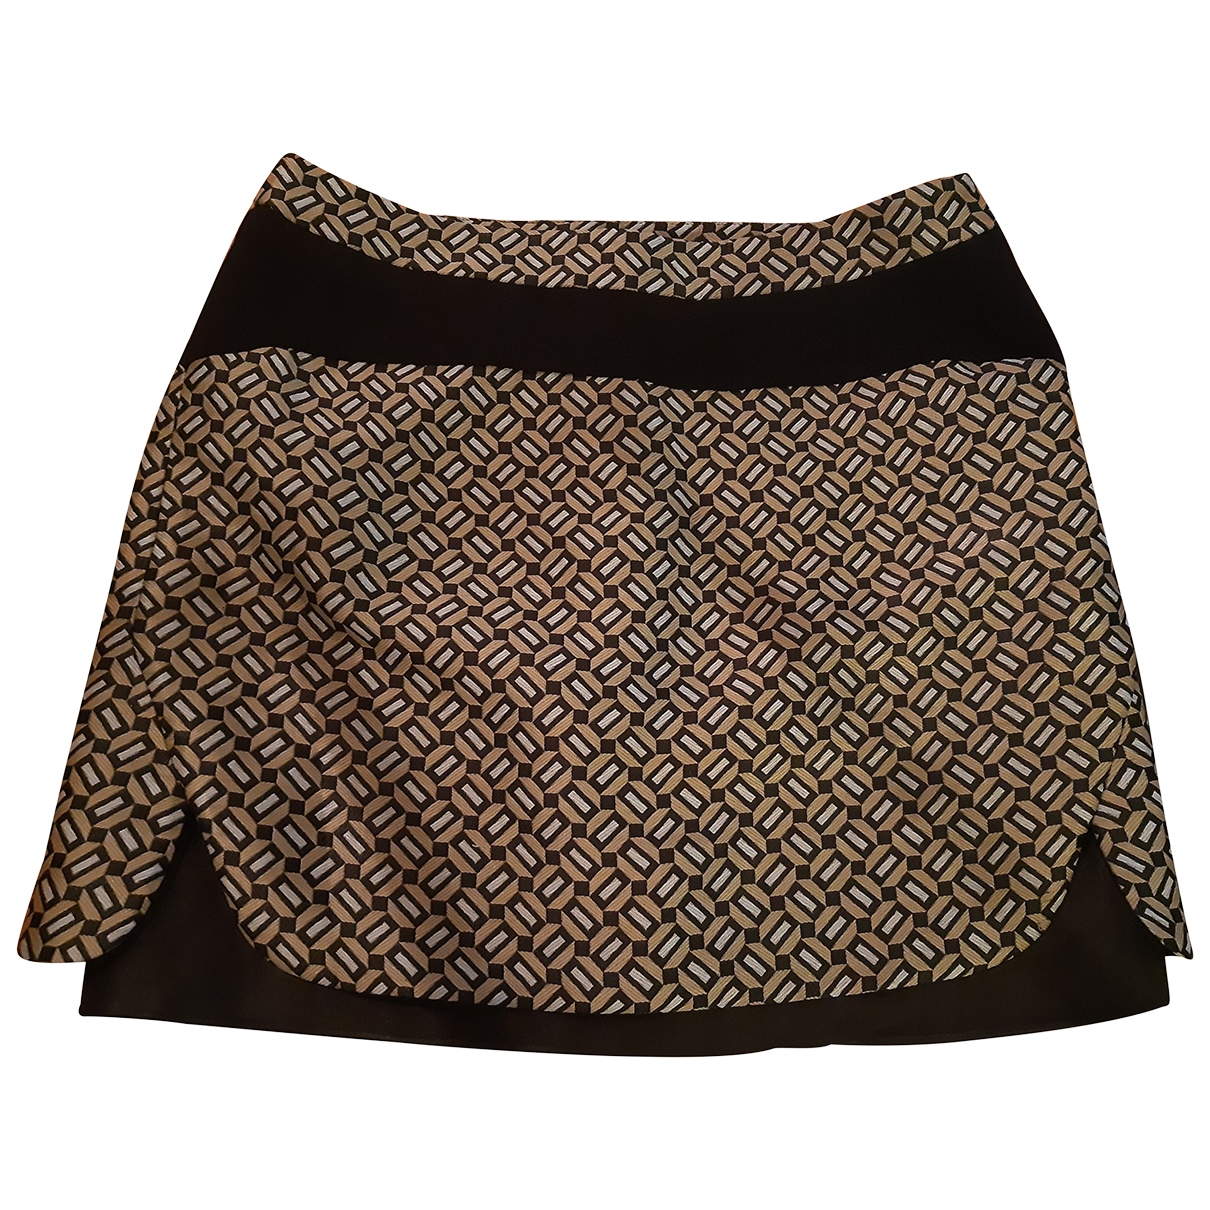 Diane Von Furstenberg \N Multicolour skirt for Women 2 0-5